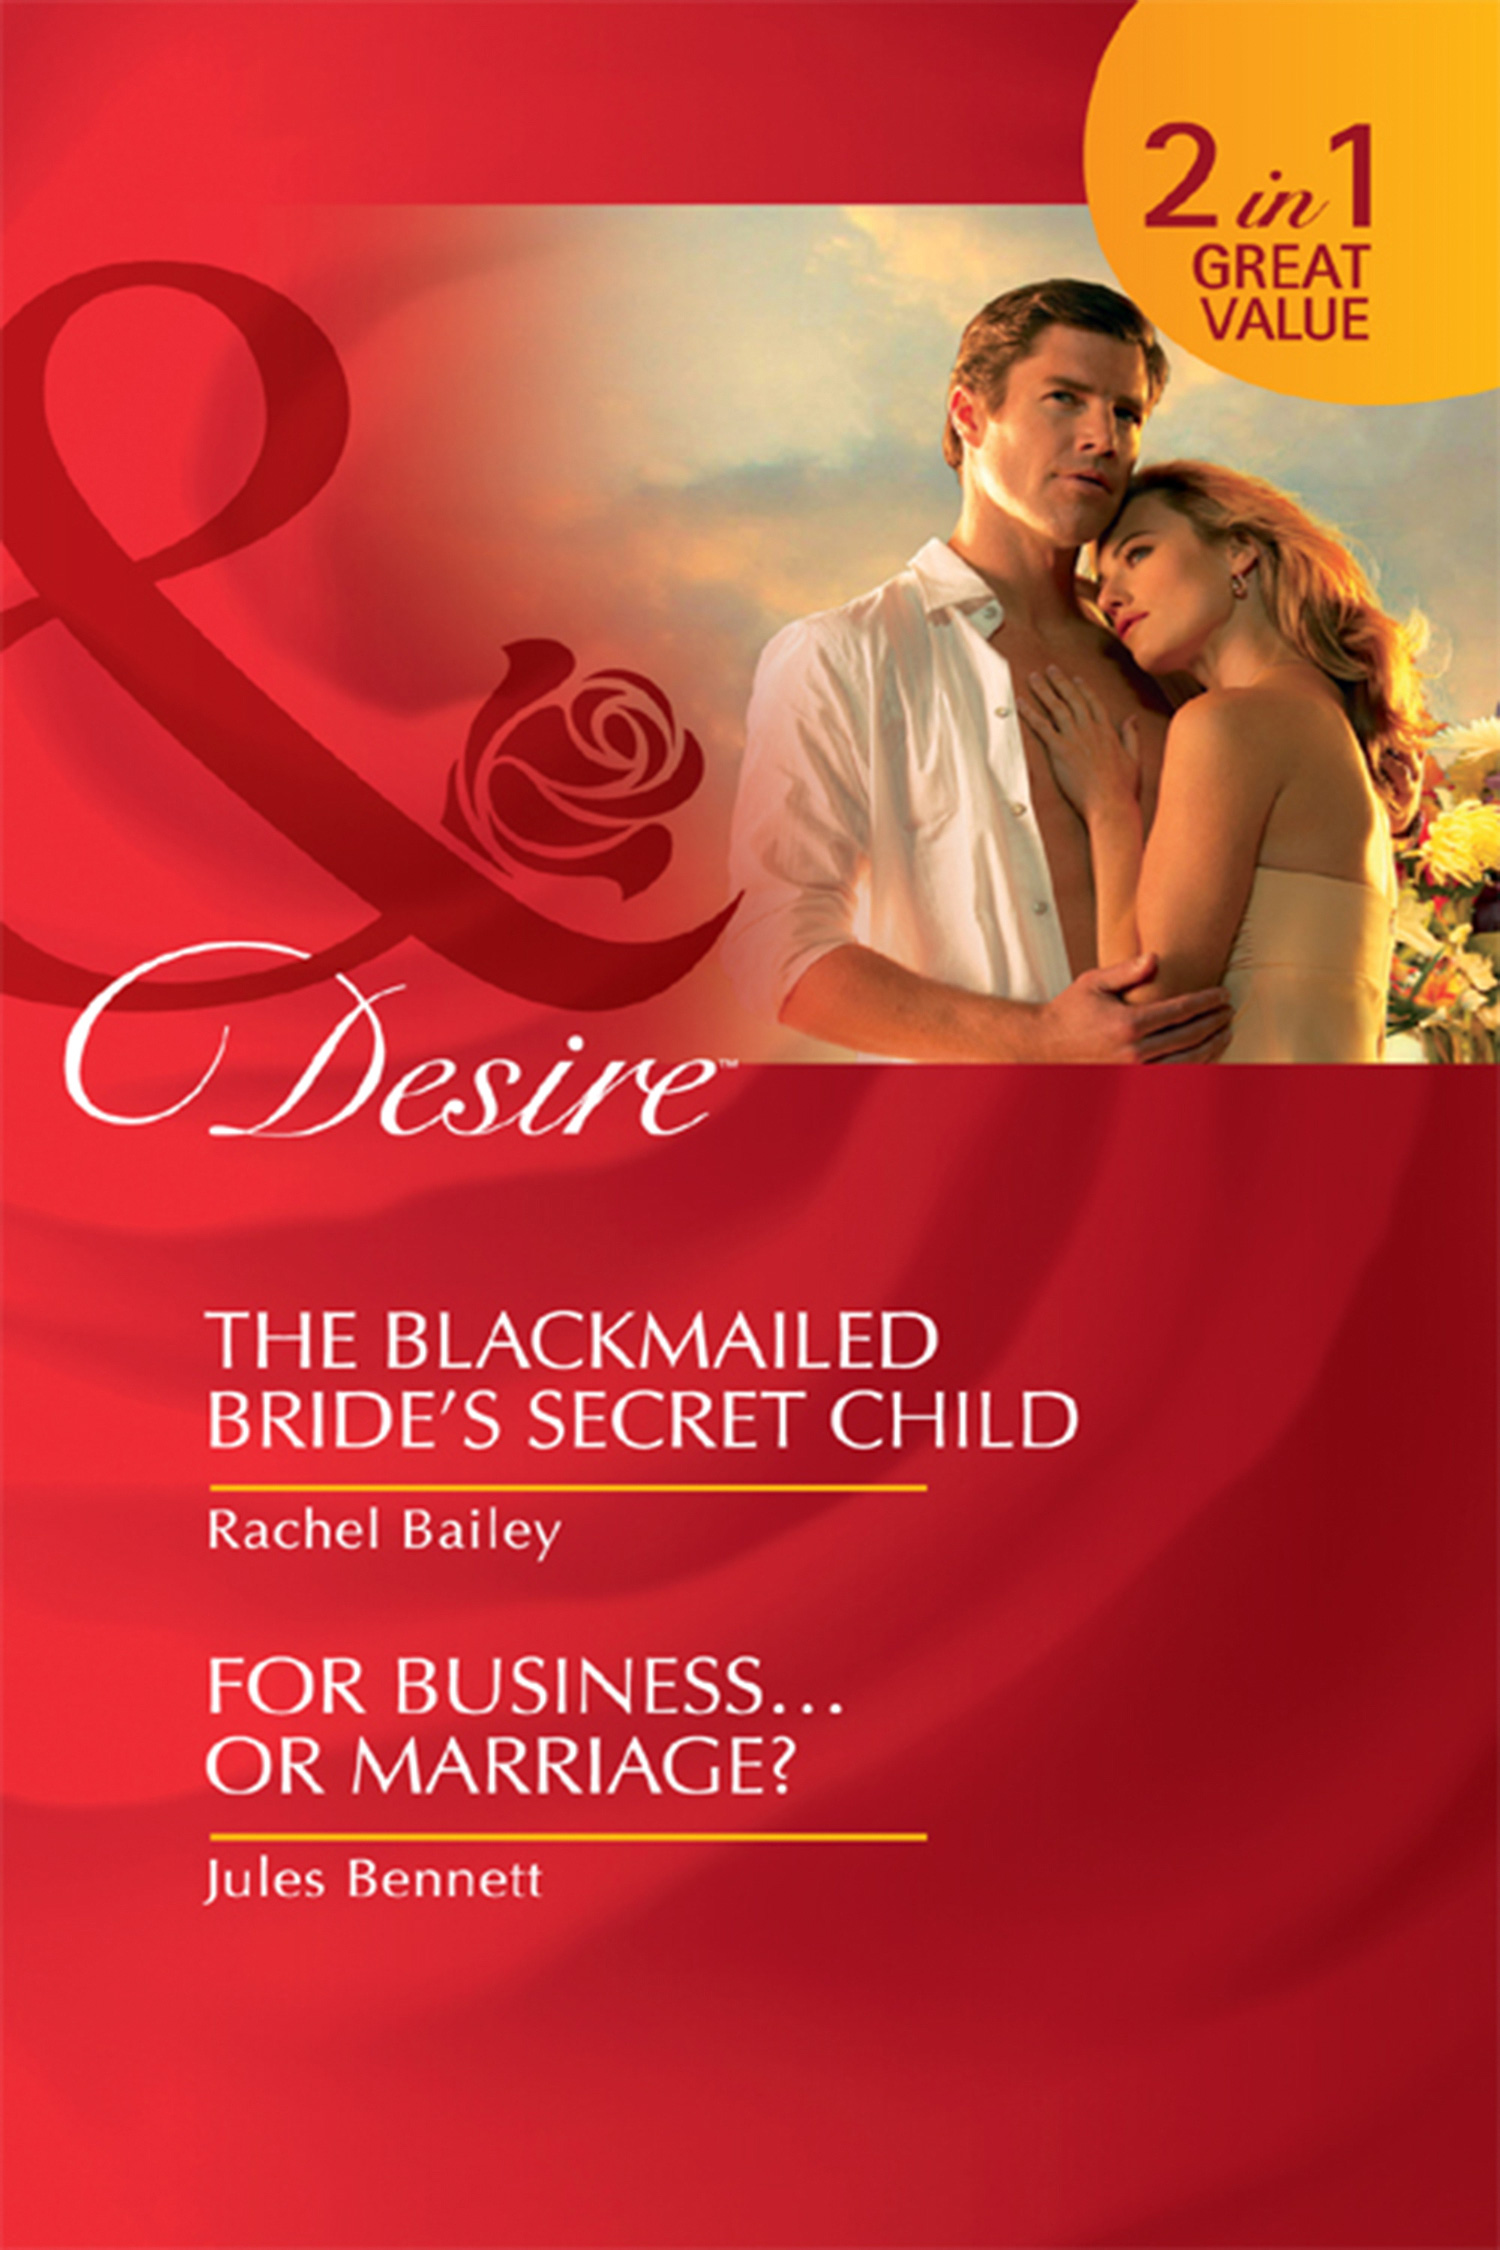 The Blackmailed Bride's Secret Child / For Business...Or Marriage?